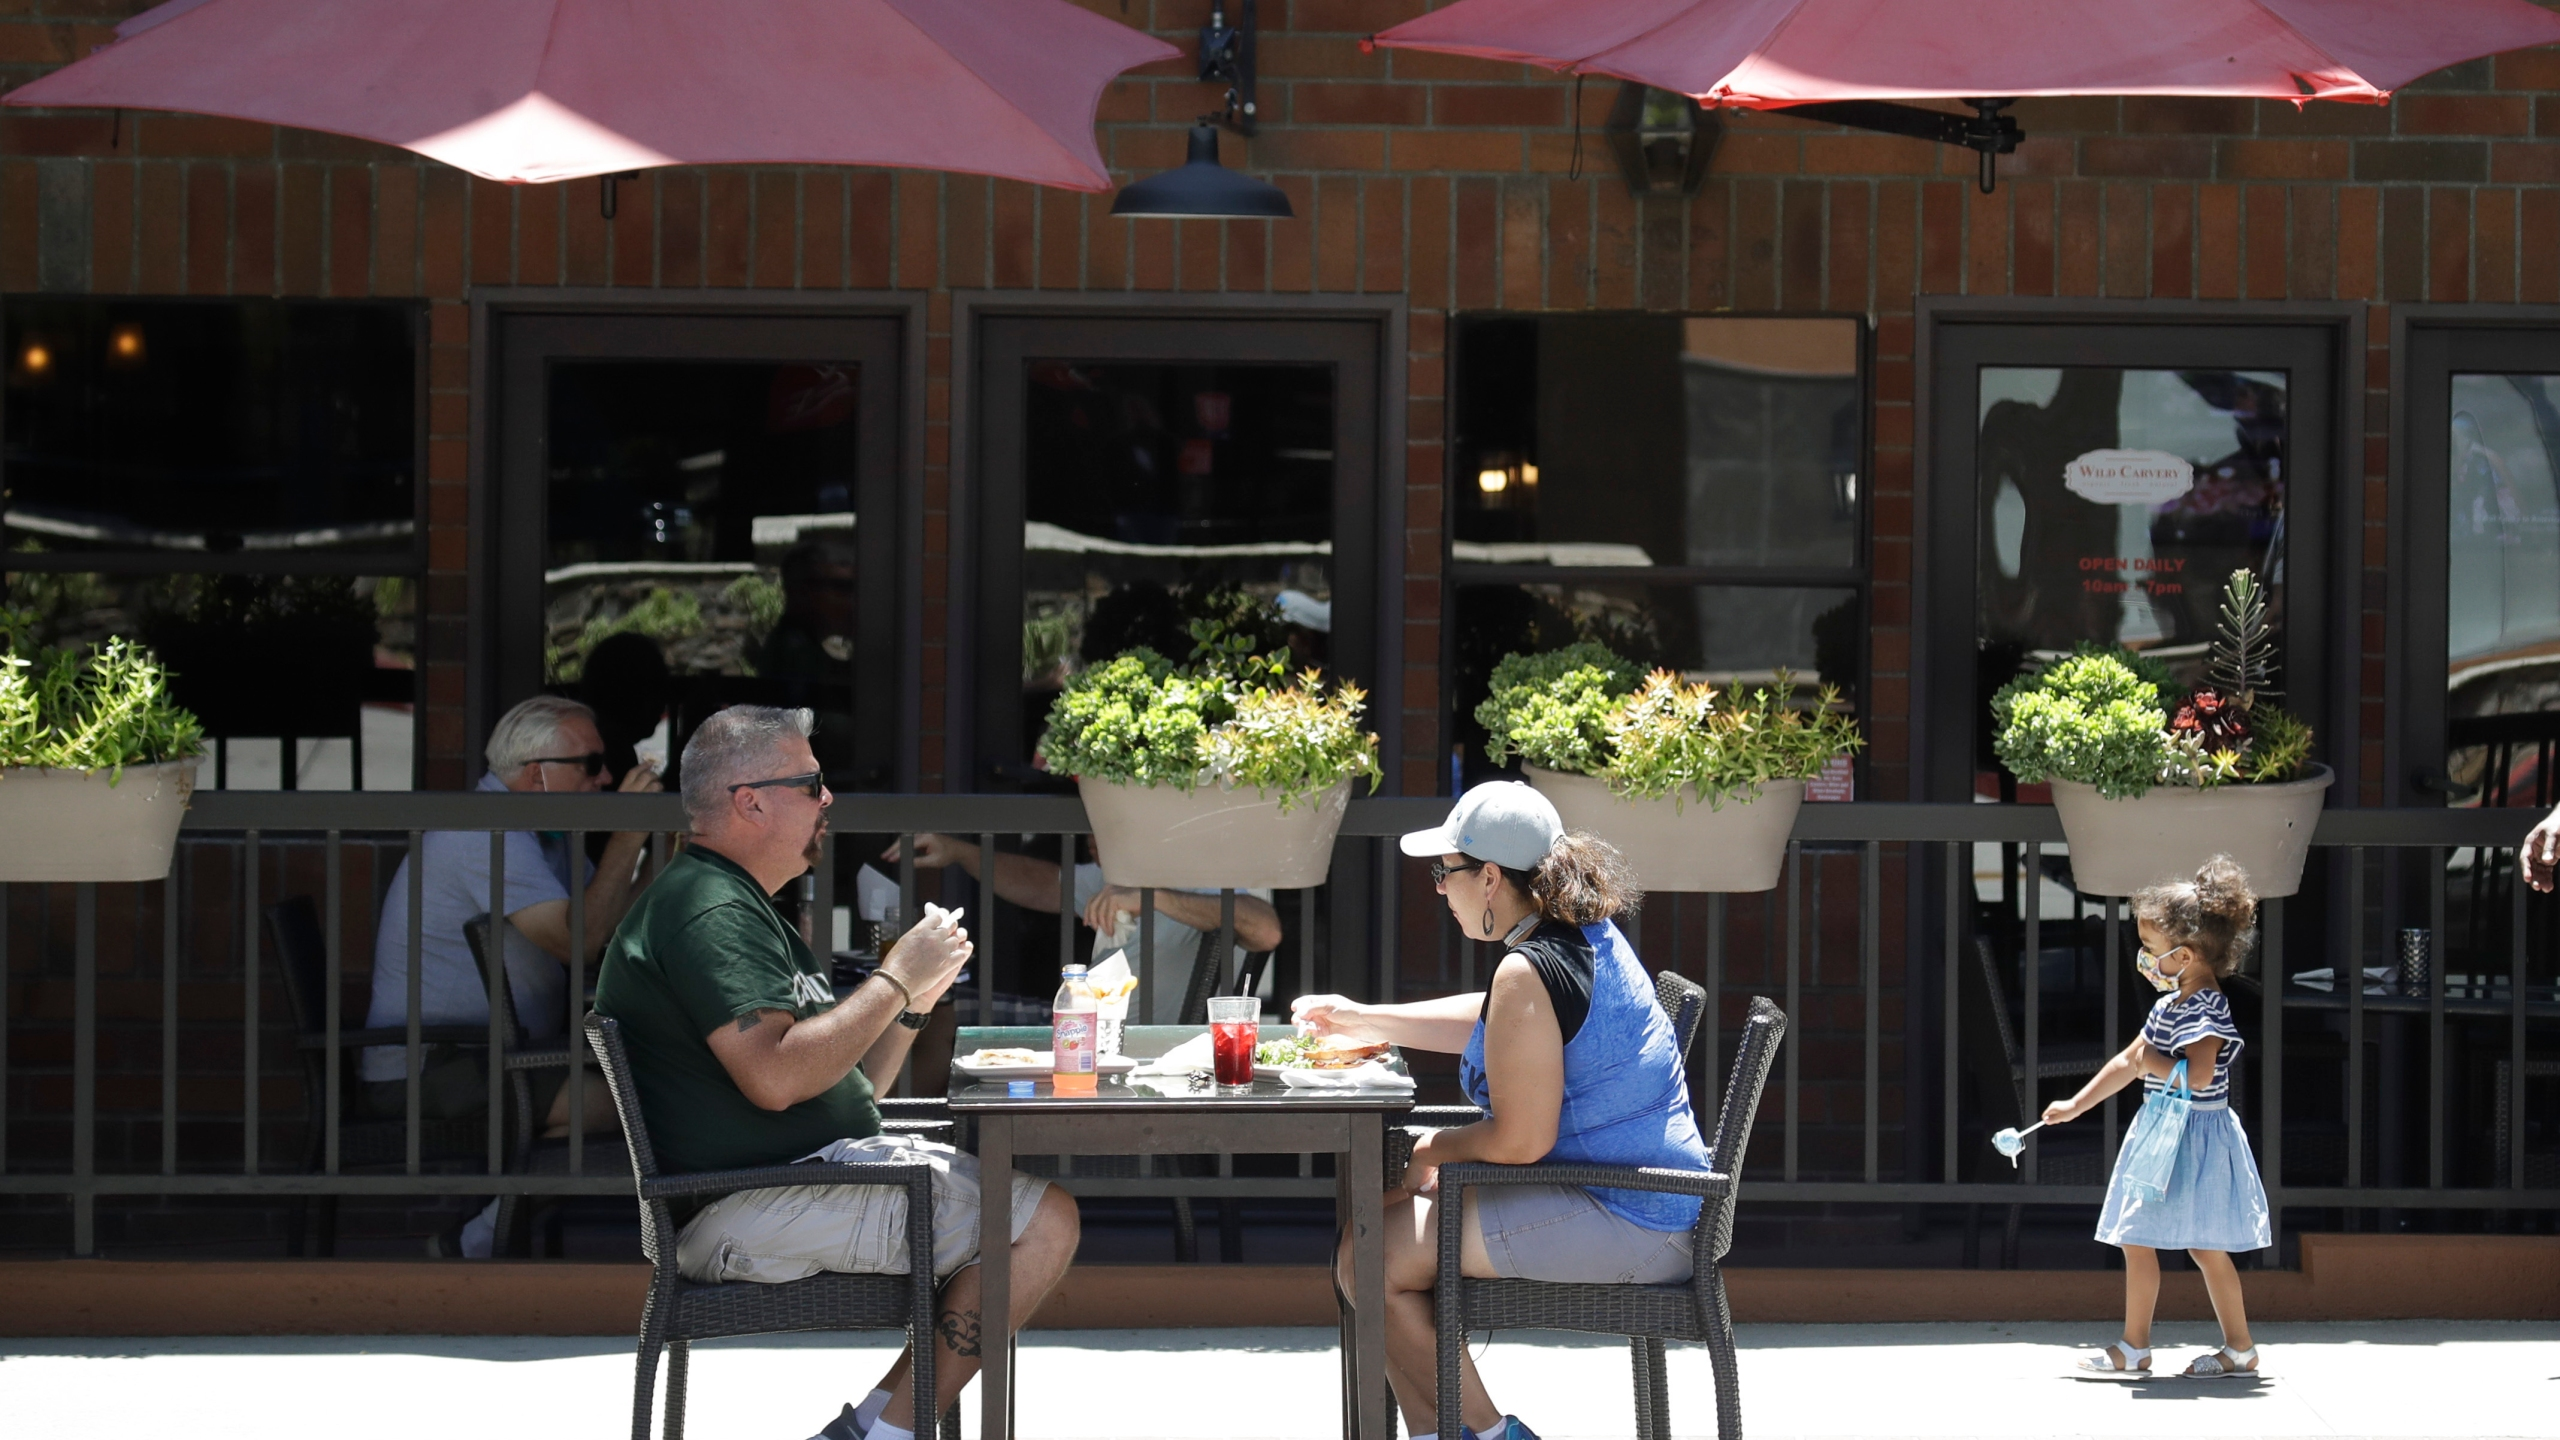 In this July 18, 2020 file photo, patrons eat at a table set up on a sidewalk in Burbank, Calif. (Marcio Jose Sanchez/AP)